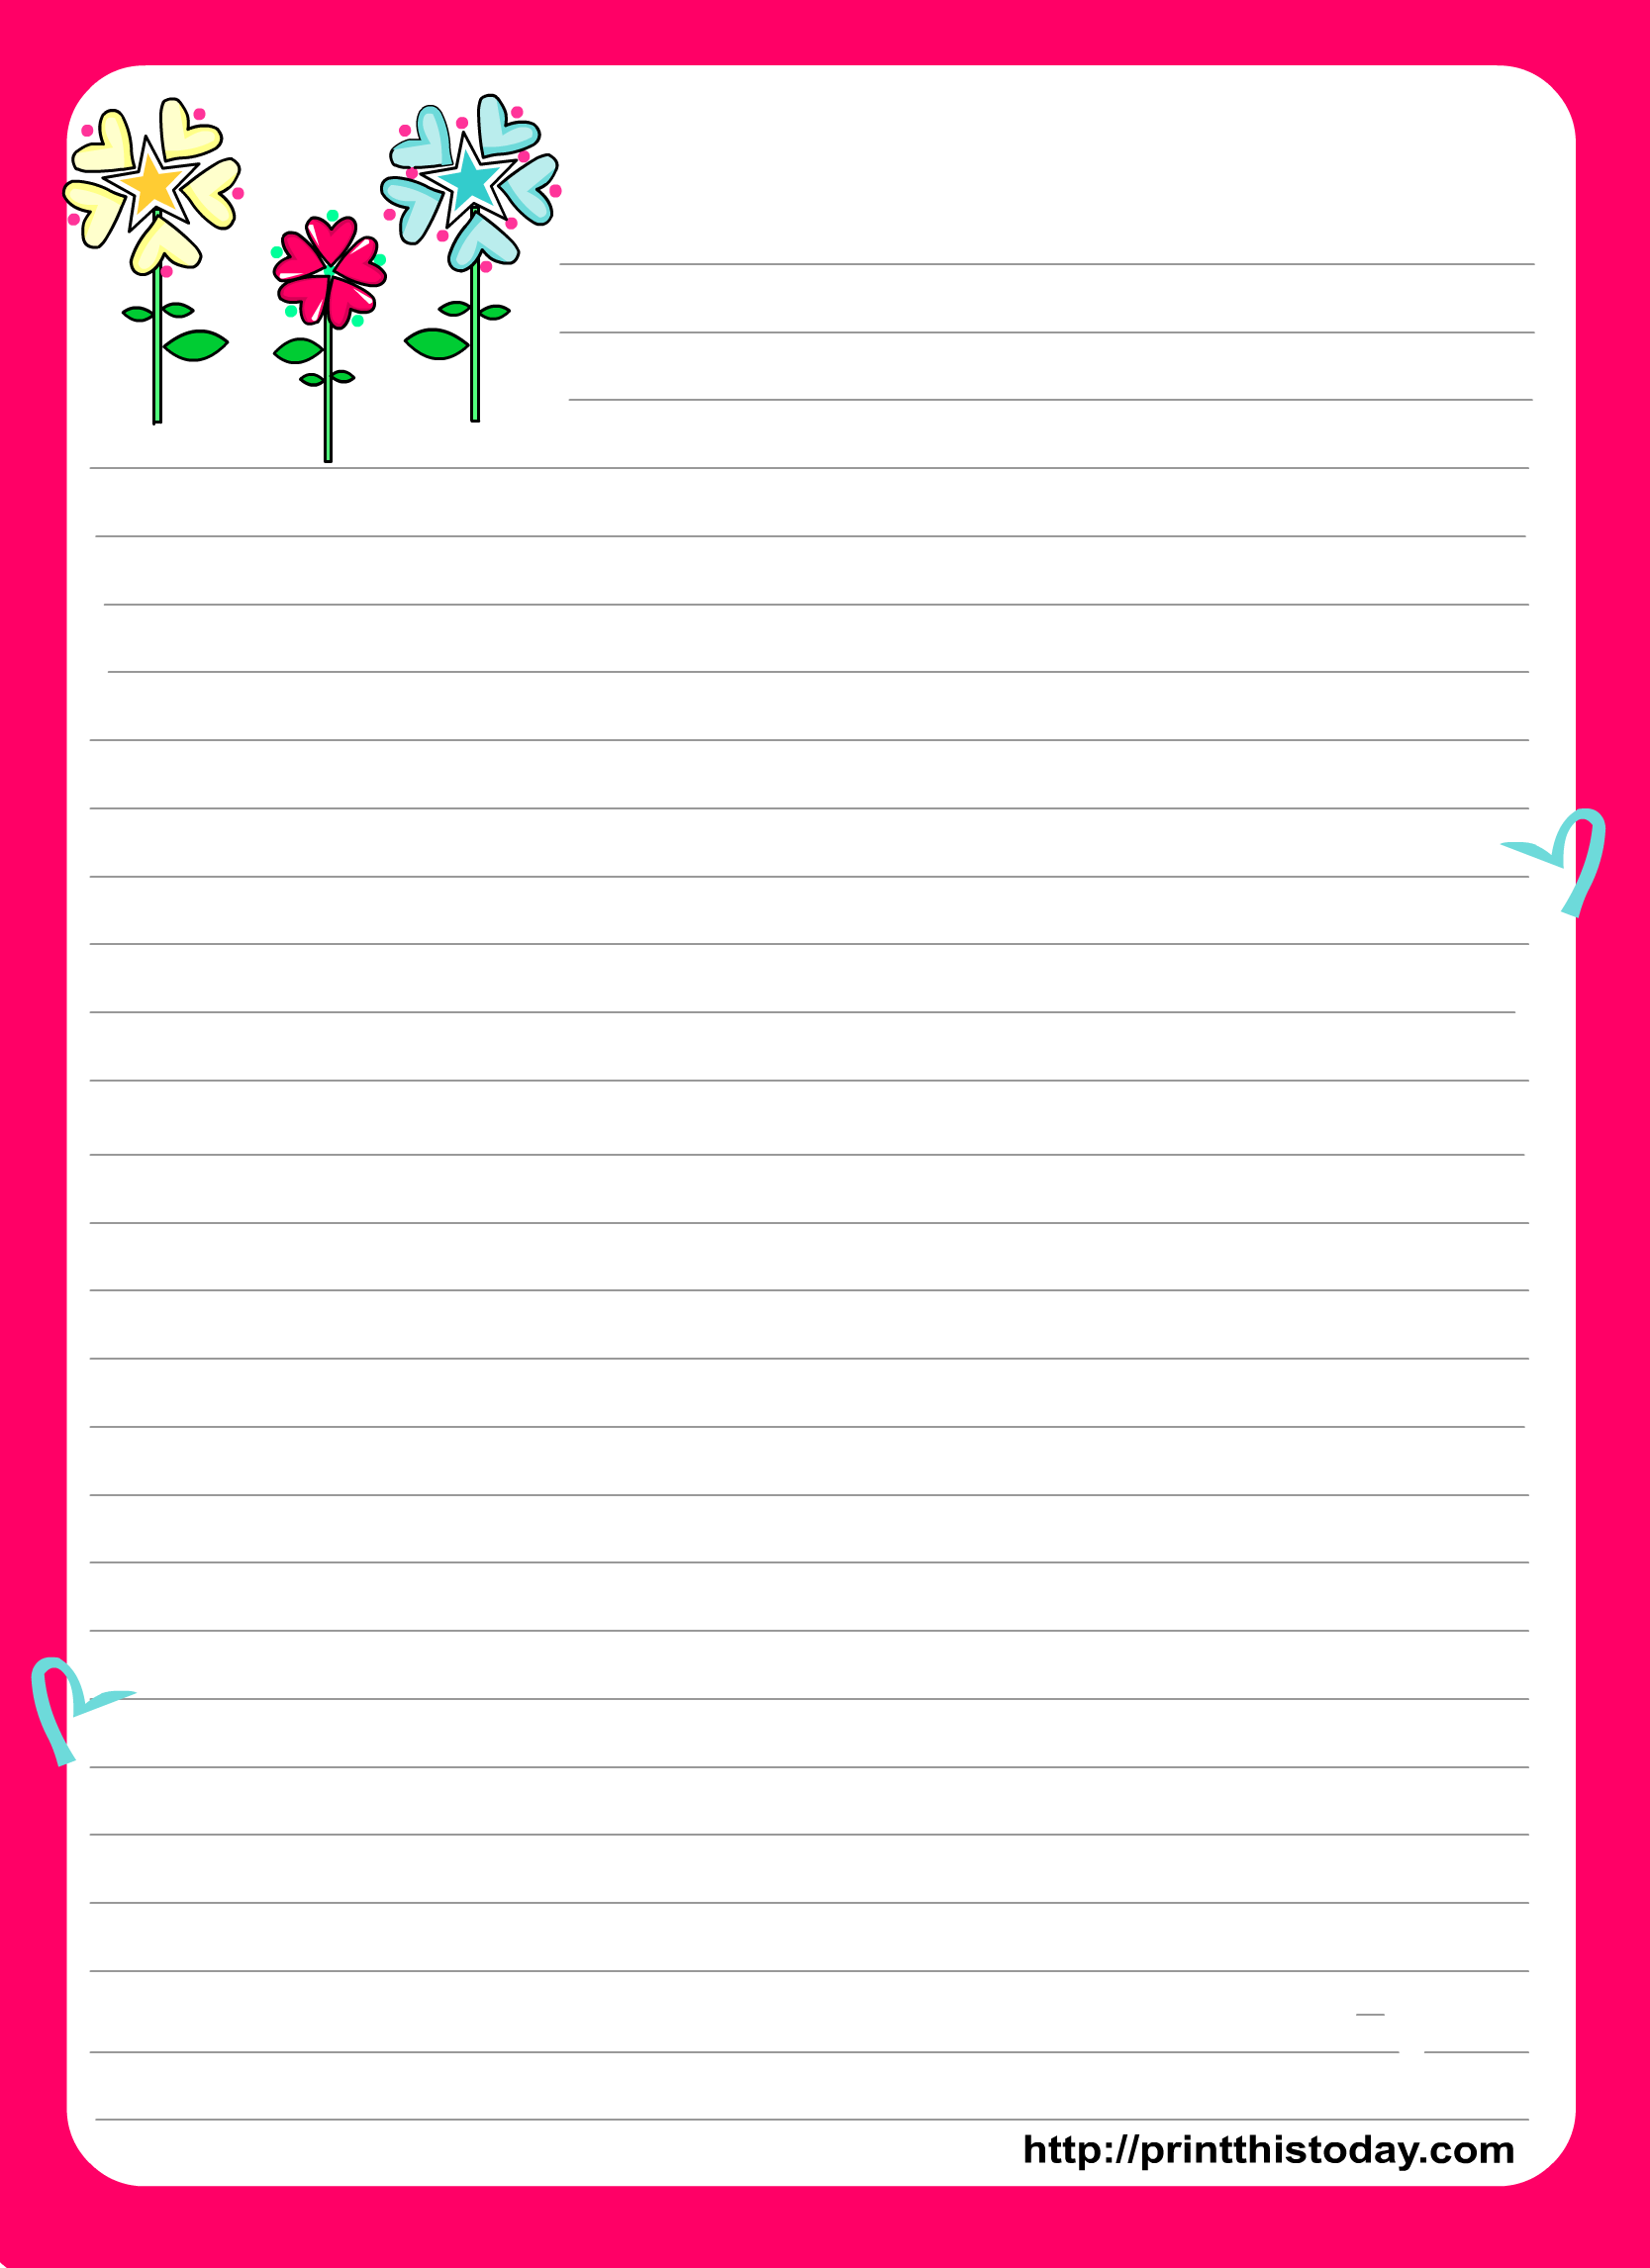 Love Letter Pad Stationery with Colorful heart – Templates for Love Letters